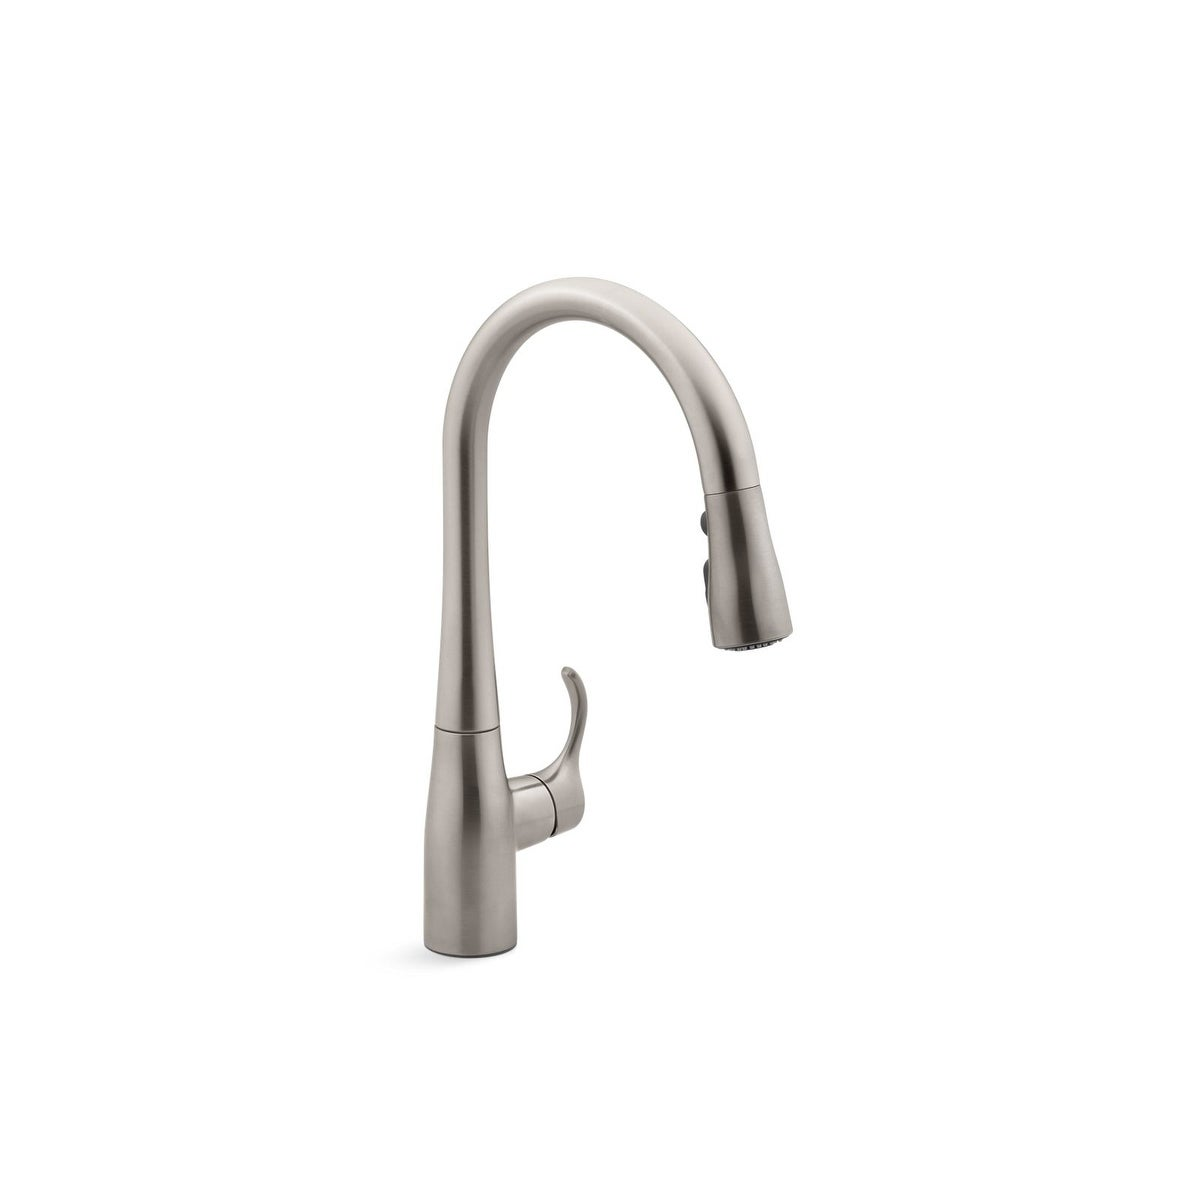 Kohler Simplice Pullout Spray Single Hole Kitchen Faucet K-597-VS Vibrant  Stainless